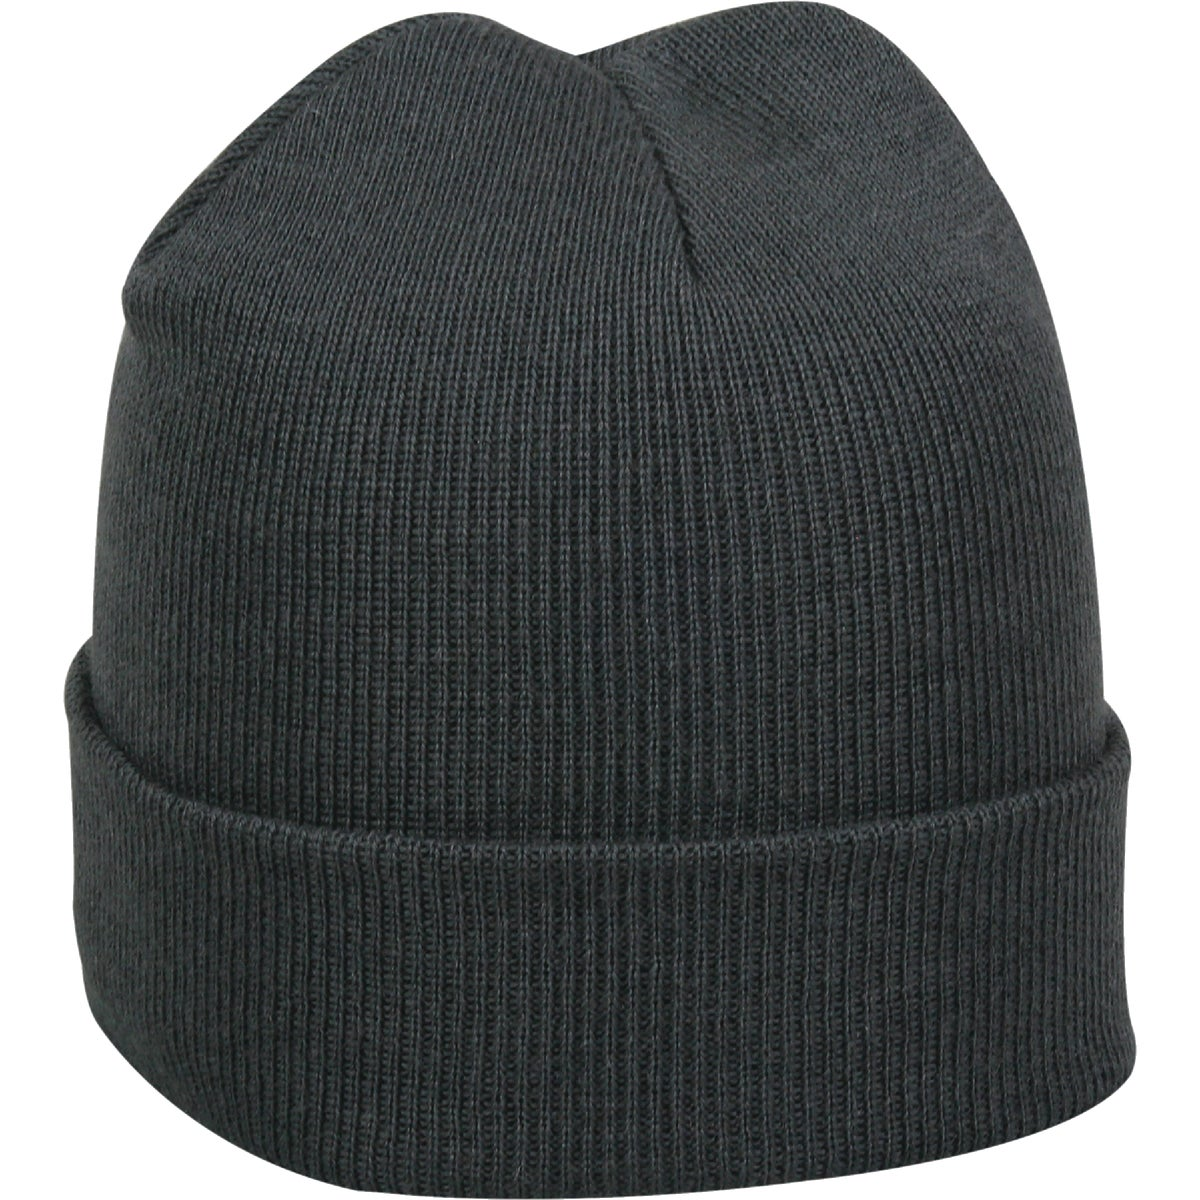 HEATHER GREY OSLO CAP - F4486-068 by Wigwam Mills, Inc